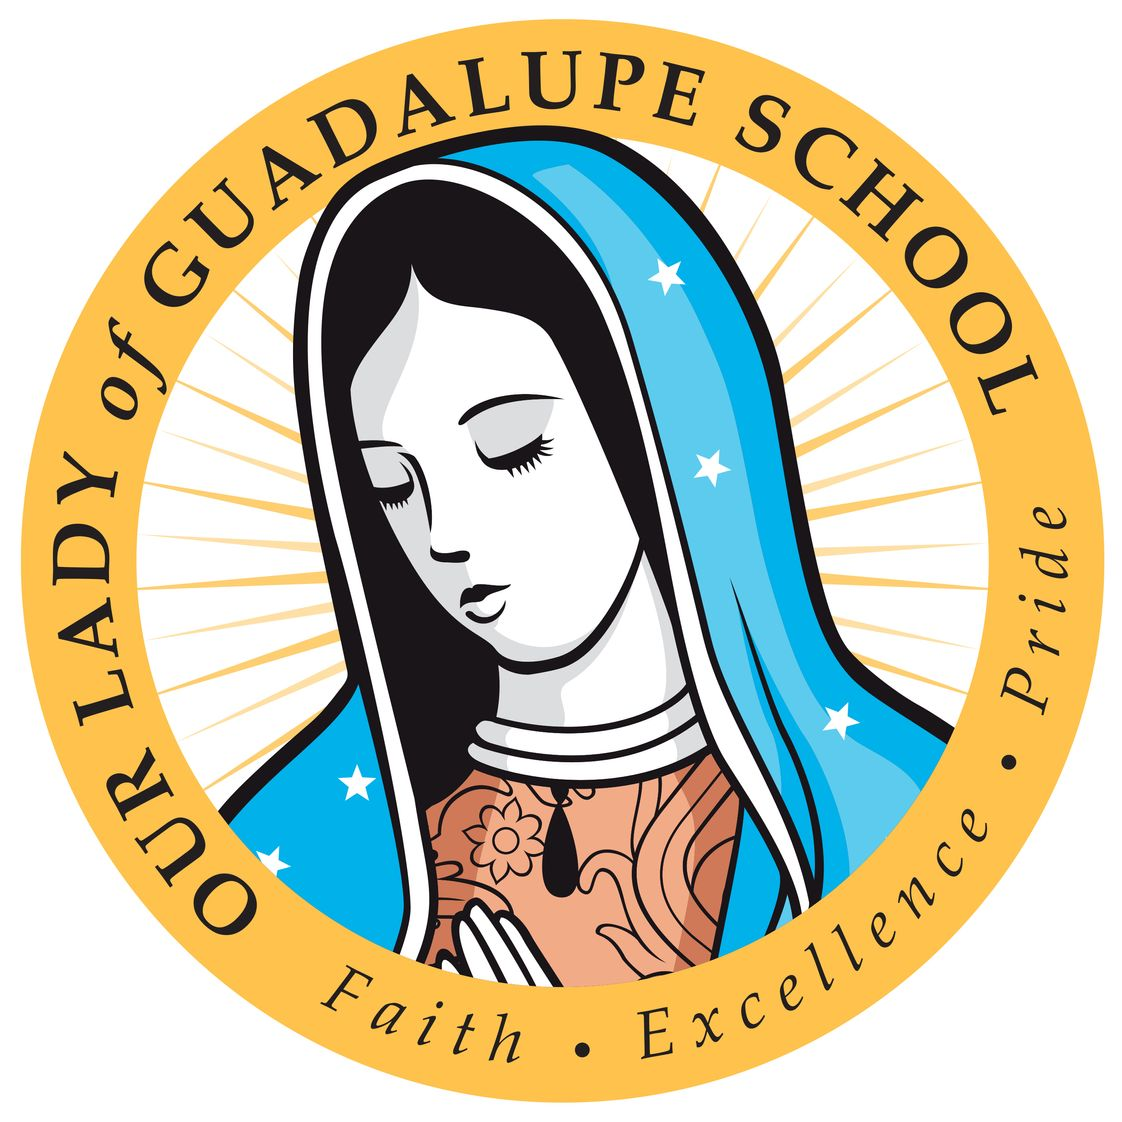 Our Lady Of Guadalupe School Photo #1 - The Pride of South Chicago!